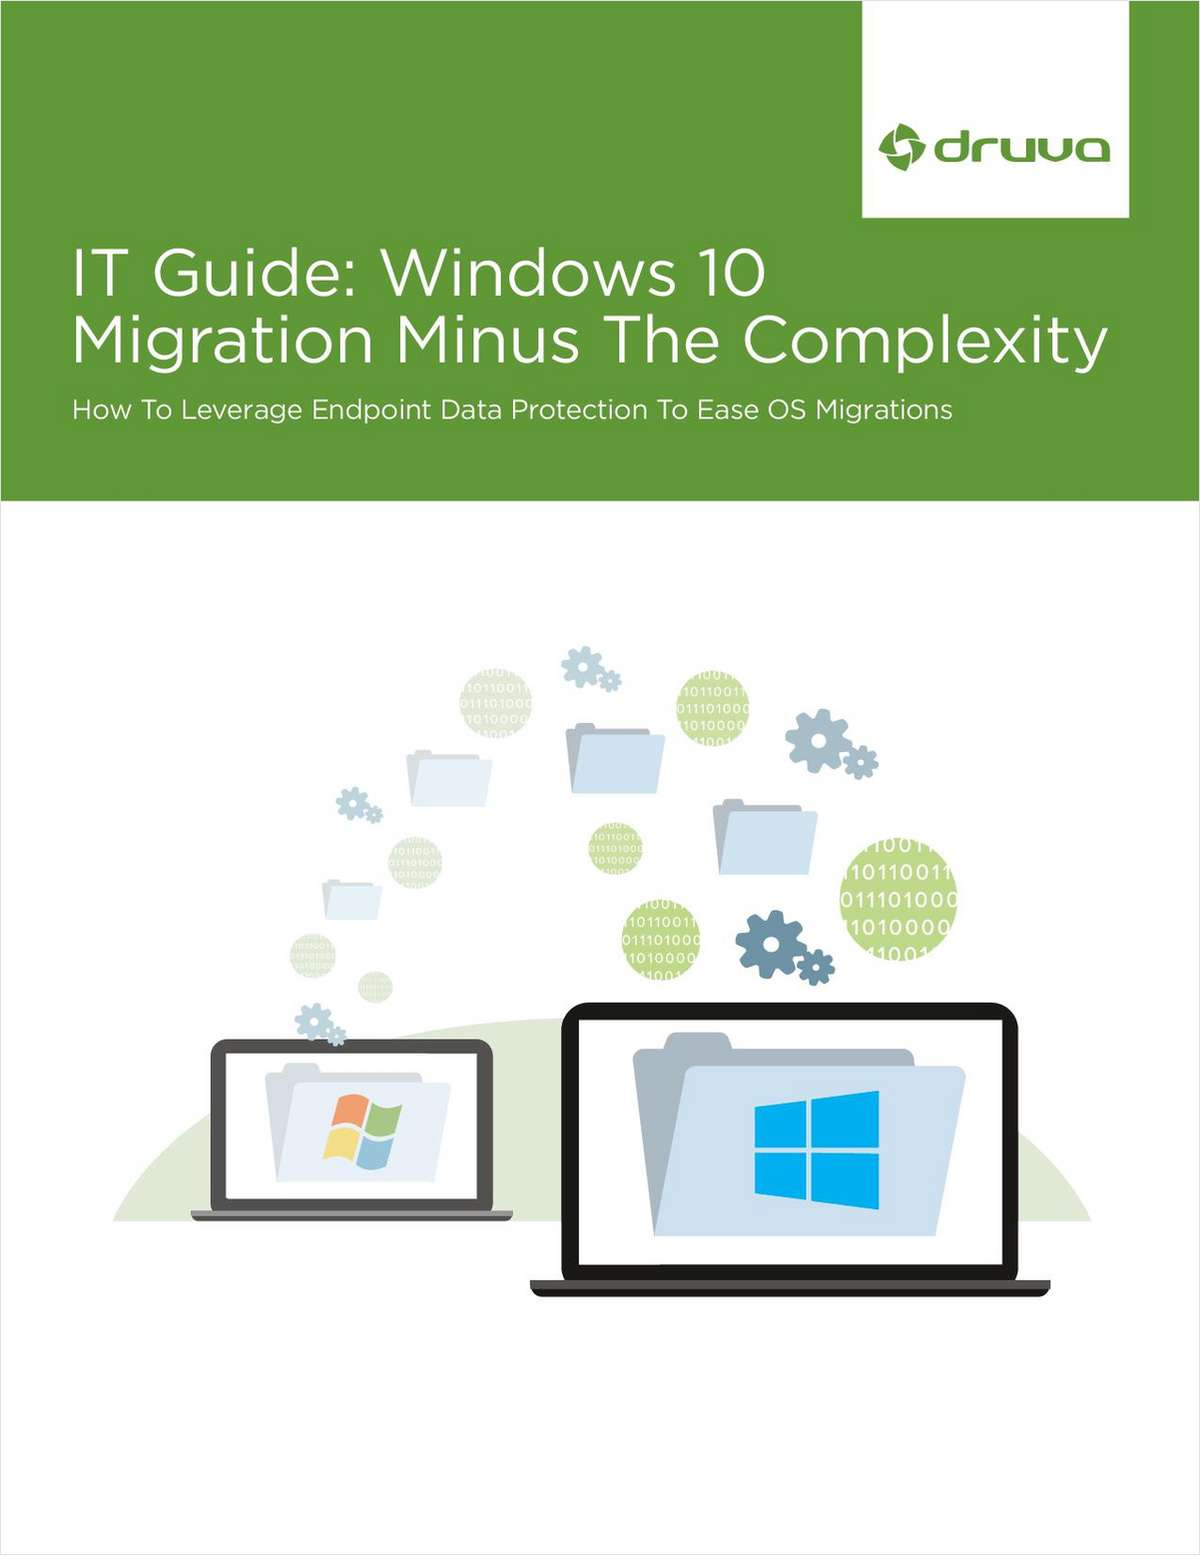 IT Guide to Windows 10 Migration